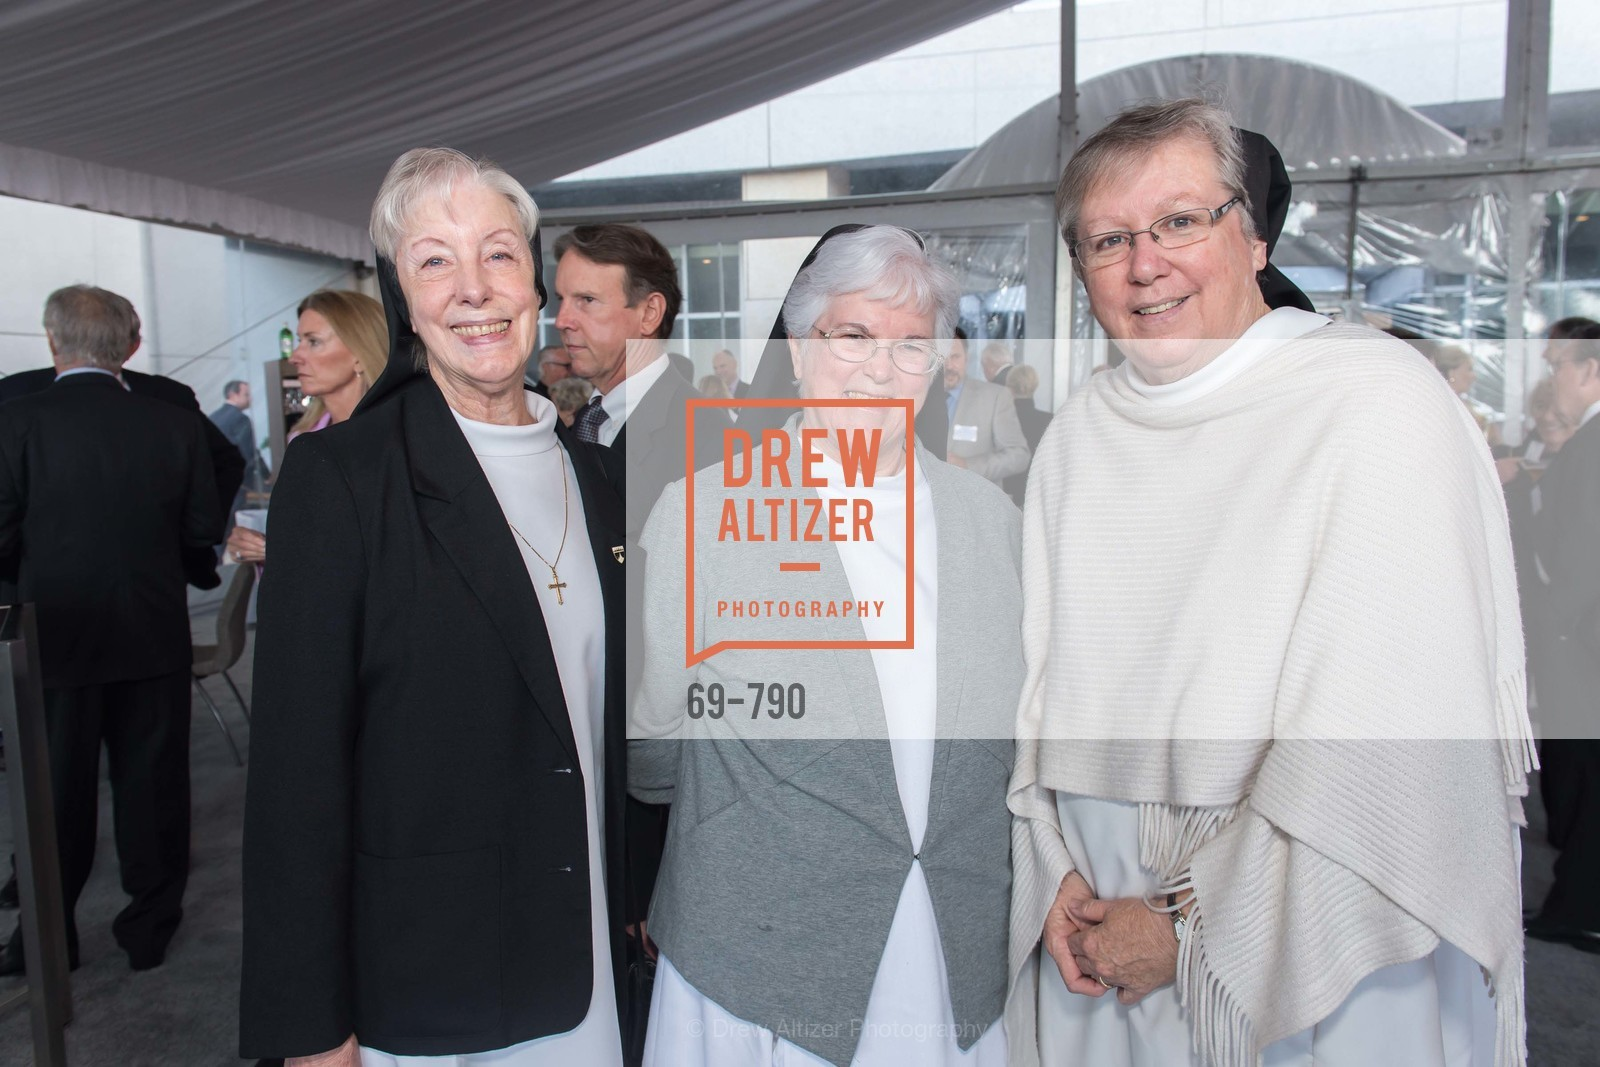 Sister Karen Elizabeth, Sister Diane, Sister Carolyn Elizabeth, Post War and Contemporary Preview at HEDGE GALLERY, US, April 16th, 2015,Drew Altizer, Drew Altizer Photography, full-service agency, private events, San Francisco photographer, photographer california